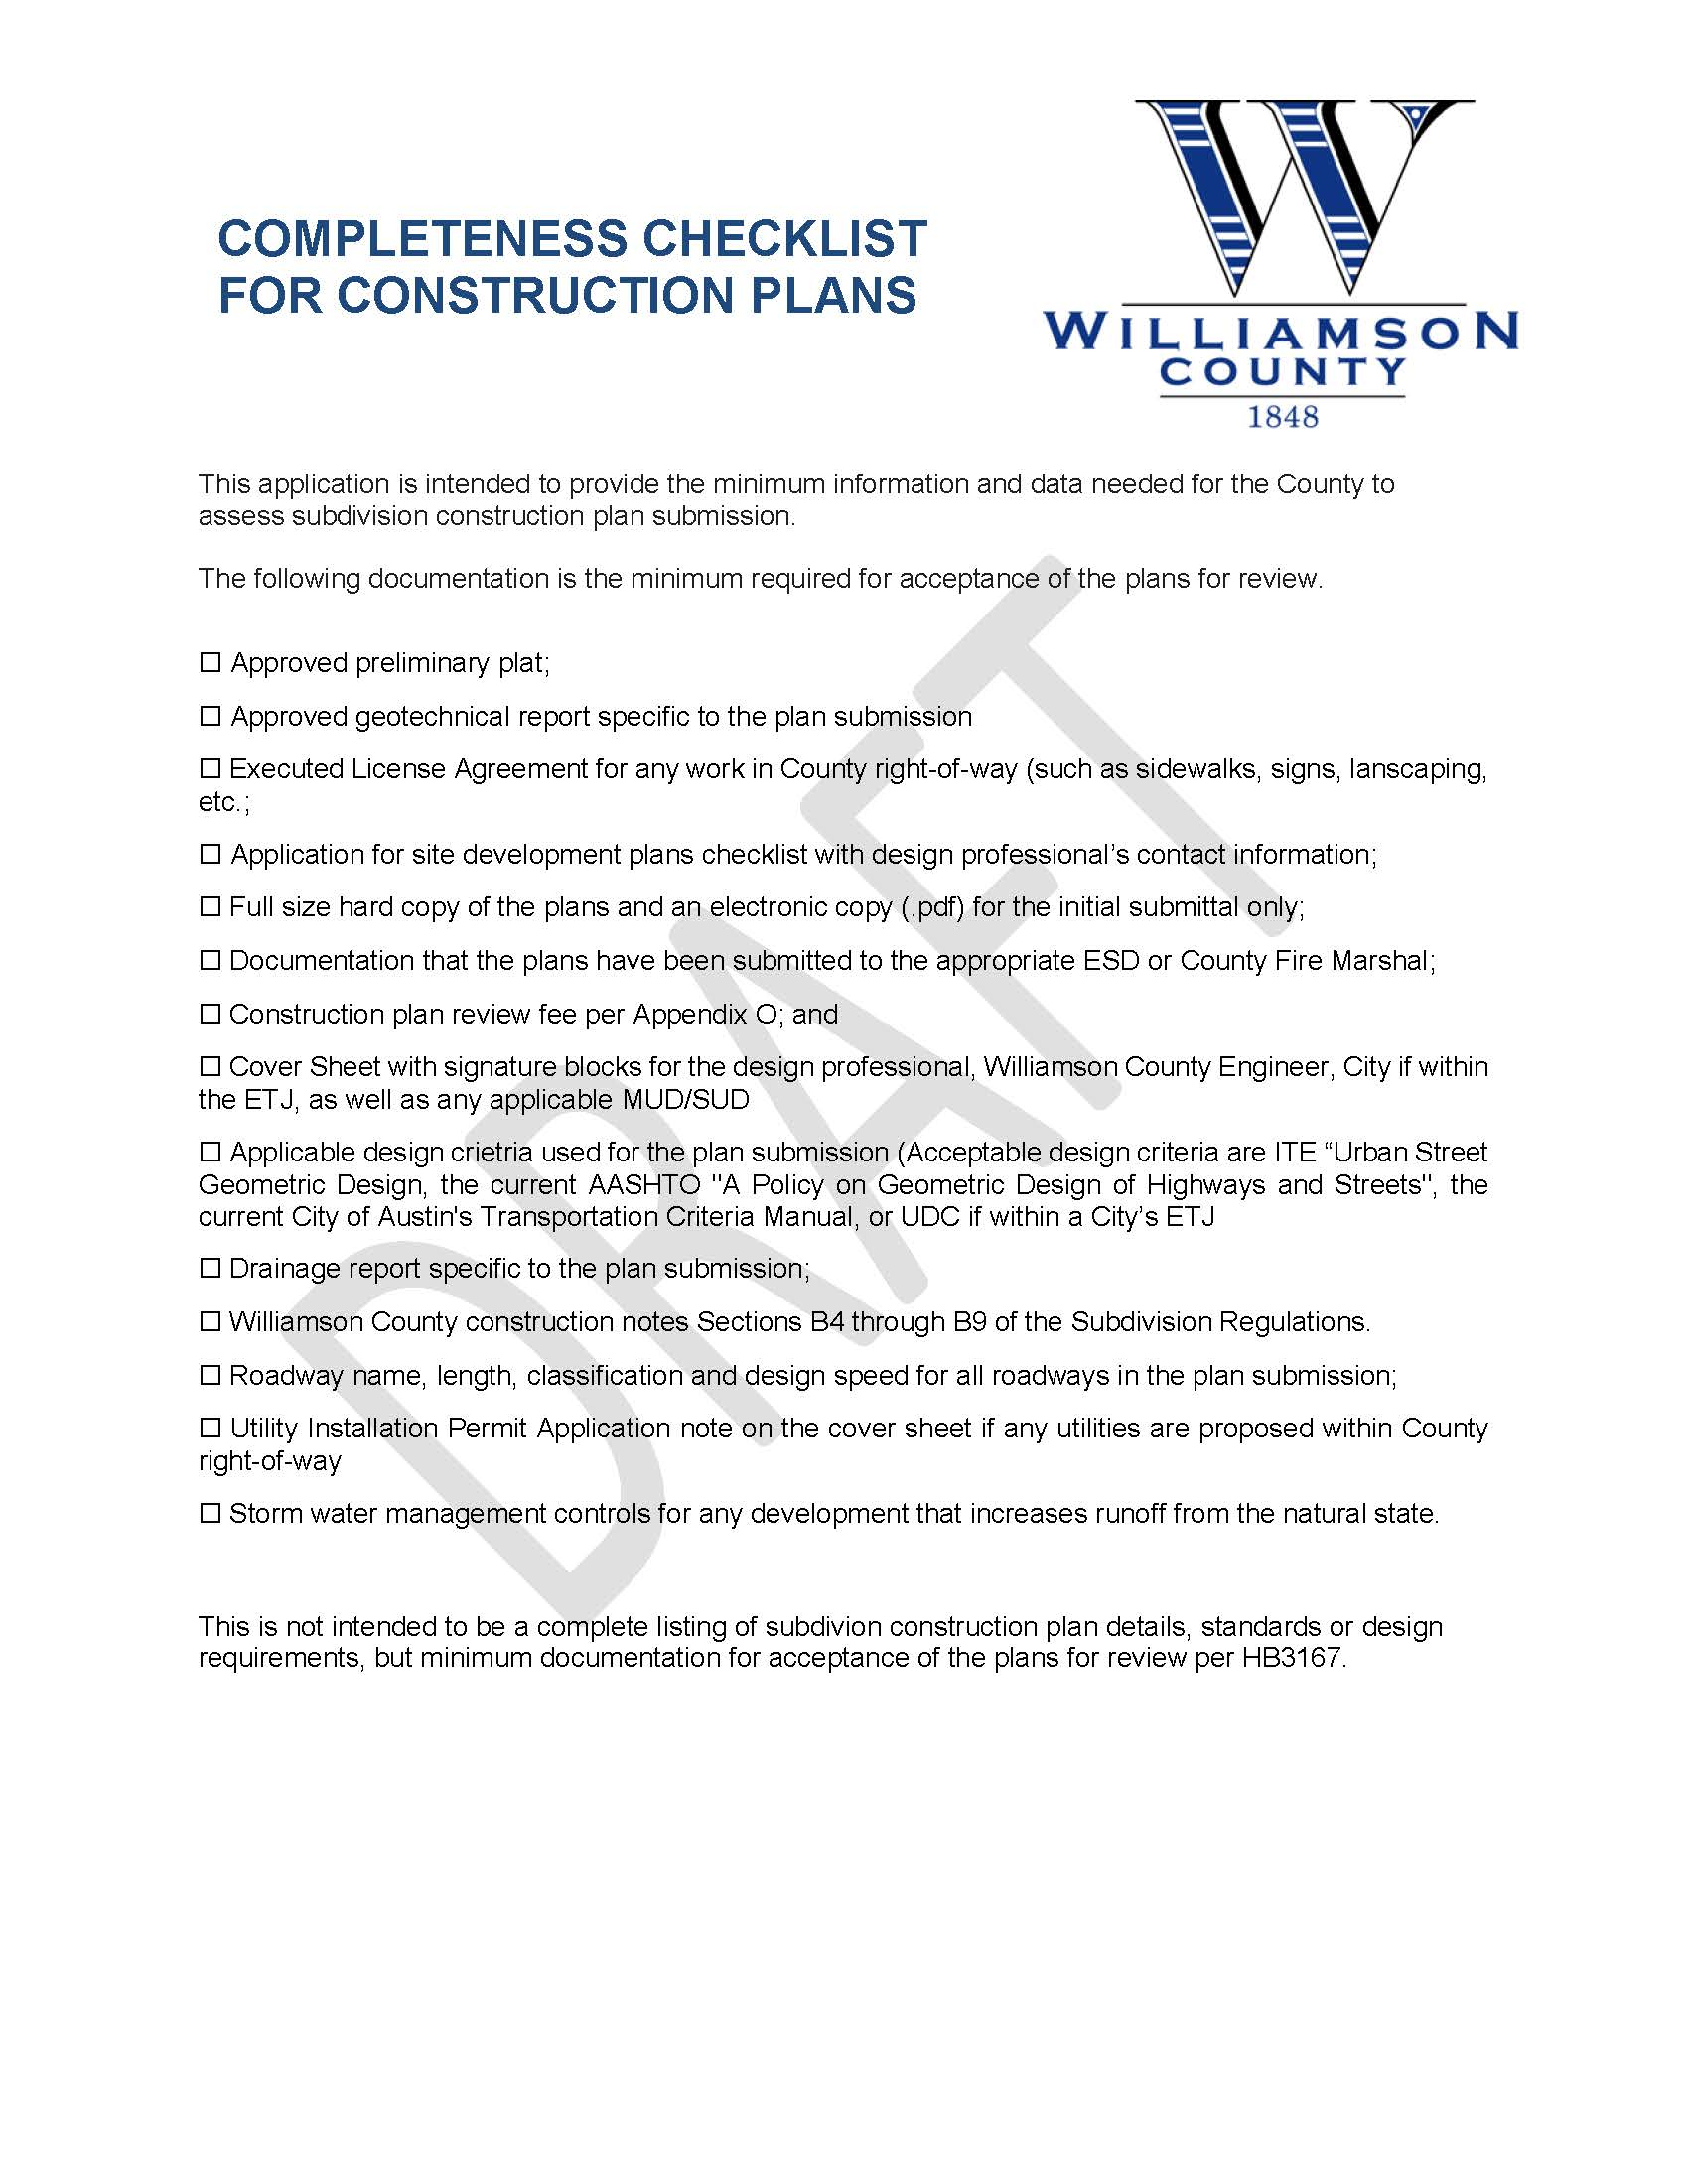 Application for Construction Plan Submission